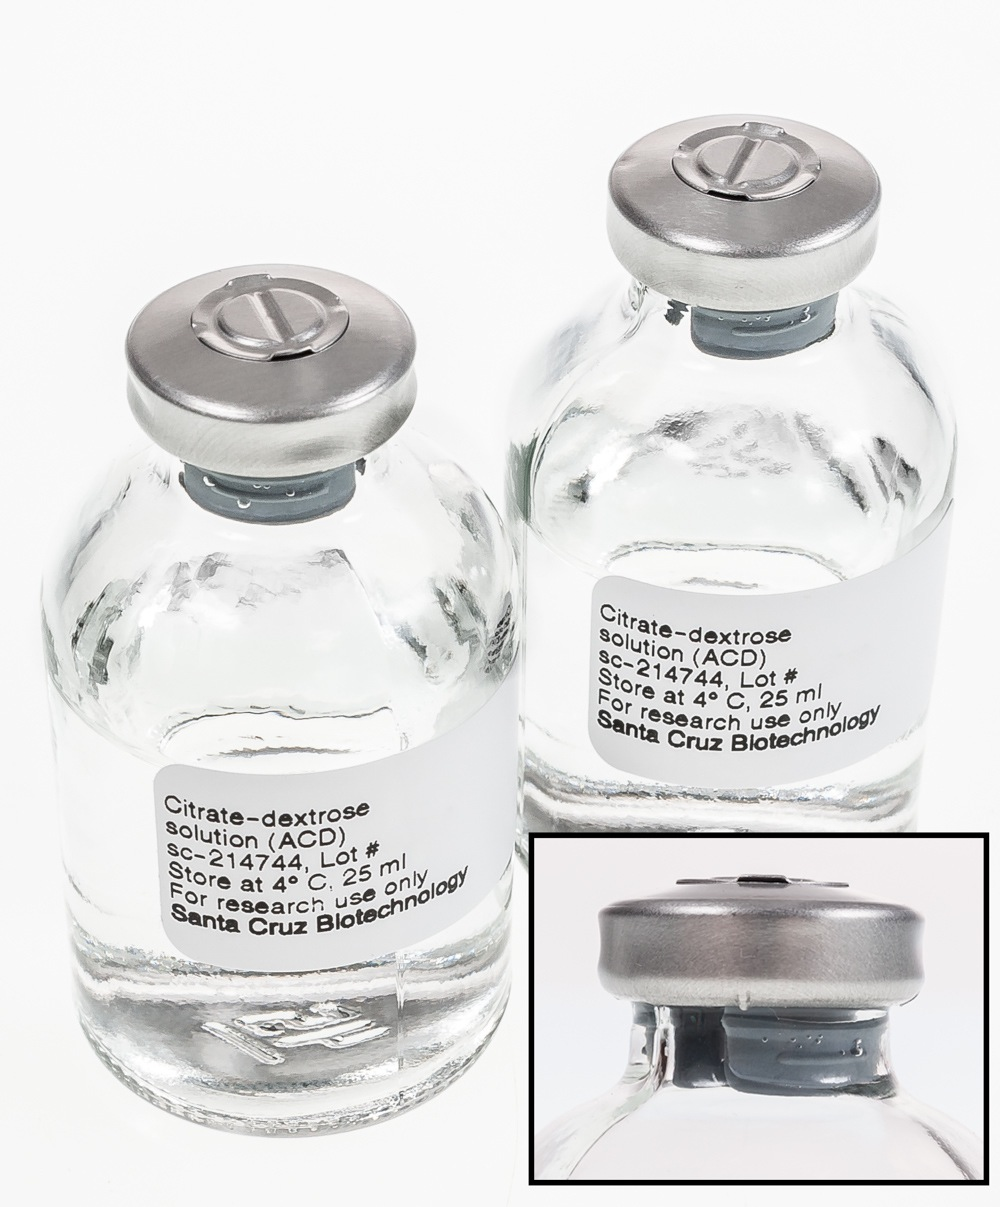 Citrate-dextrose solution (ACD)